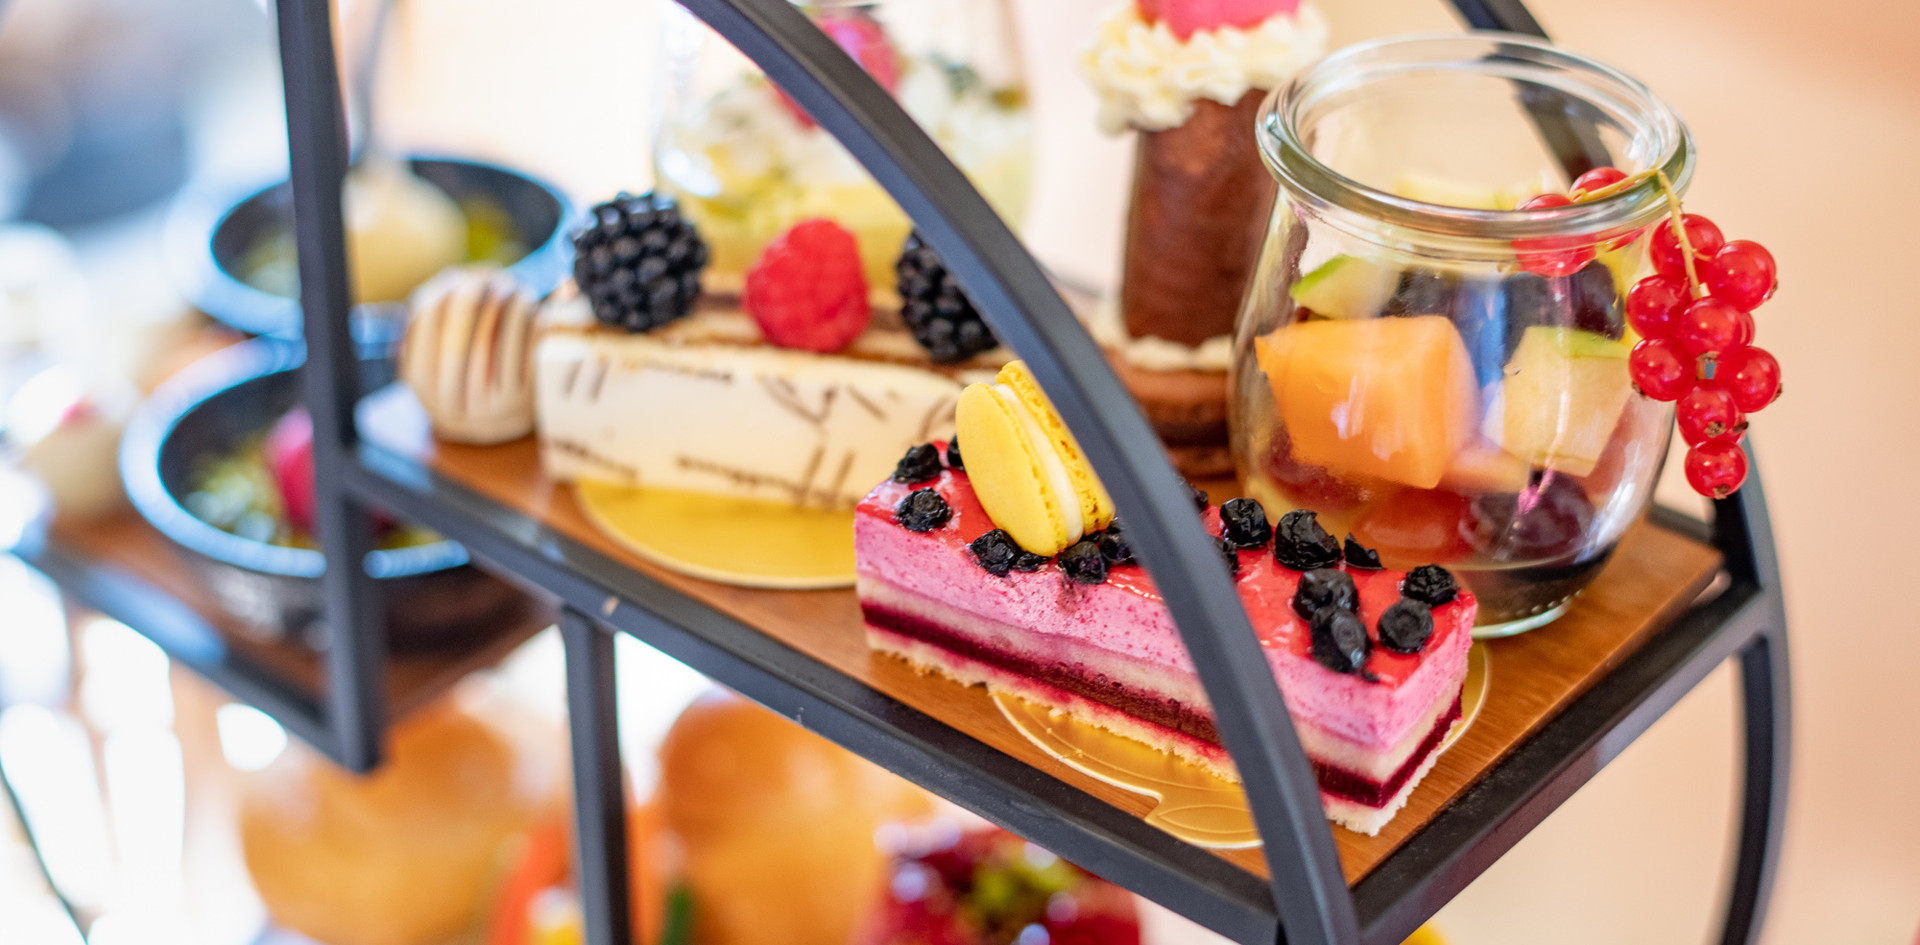 Etagere kleine sweets Afternoon Tea - Hotel Wegner - The culinary Art Hotel